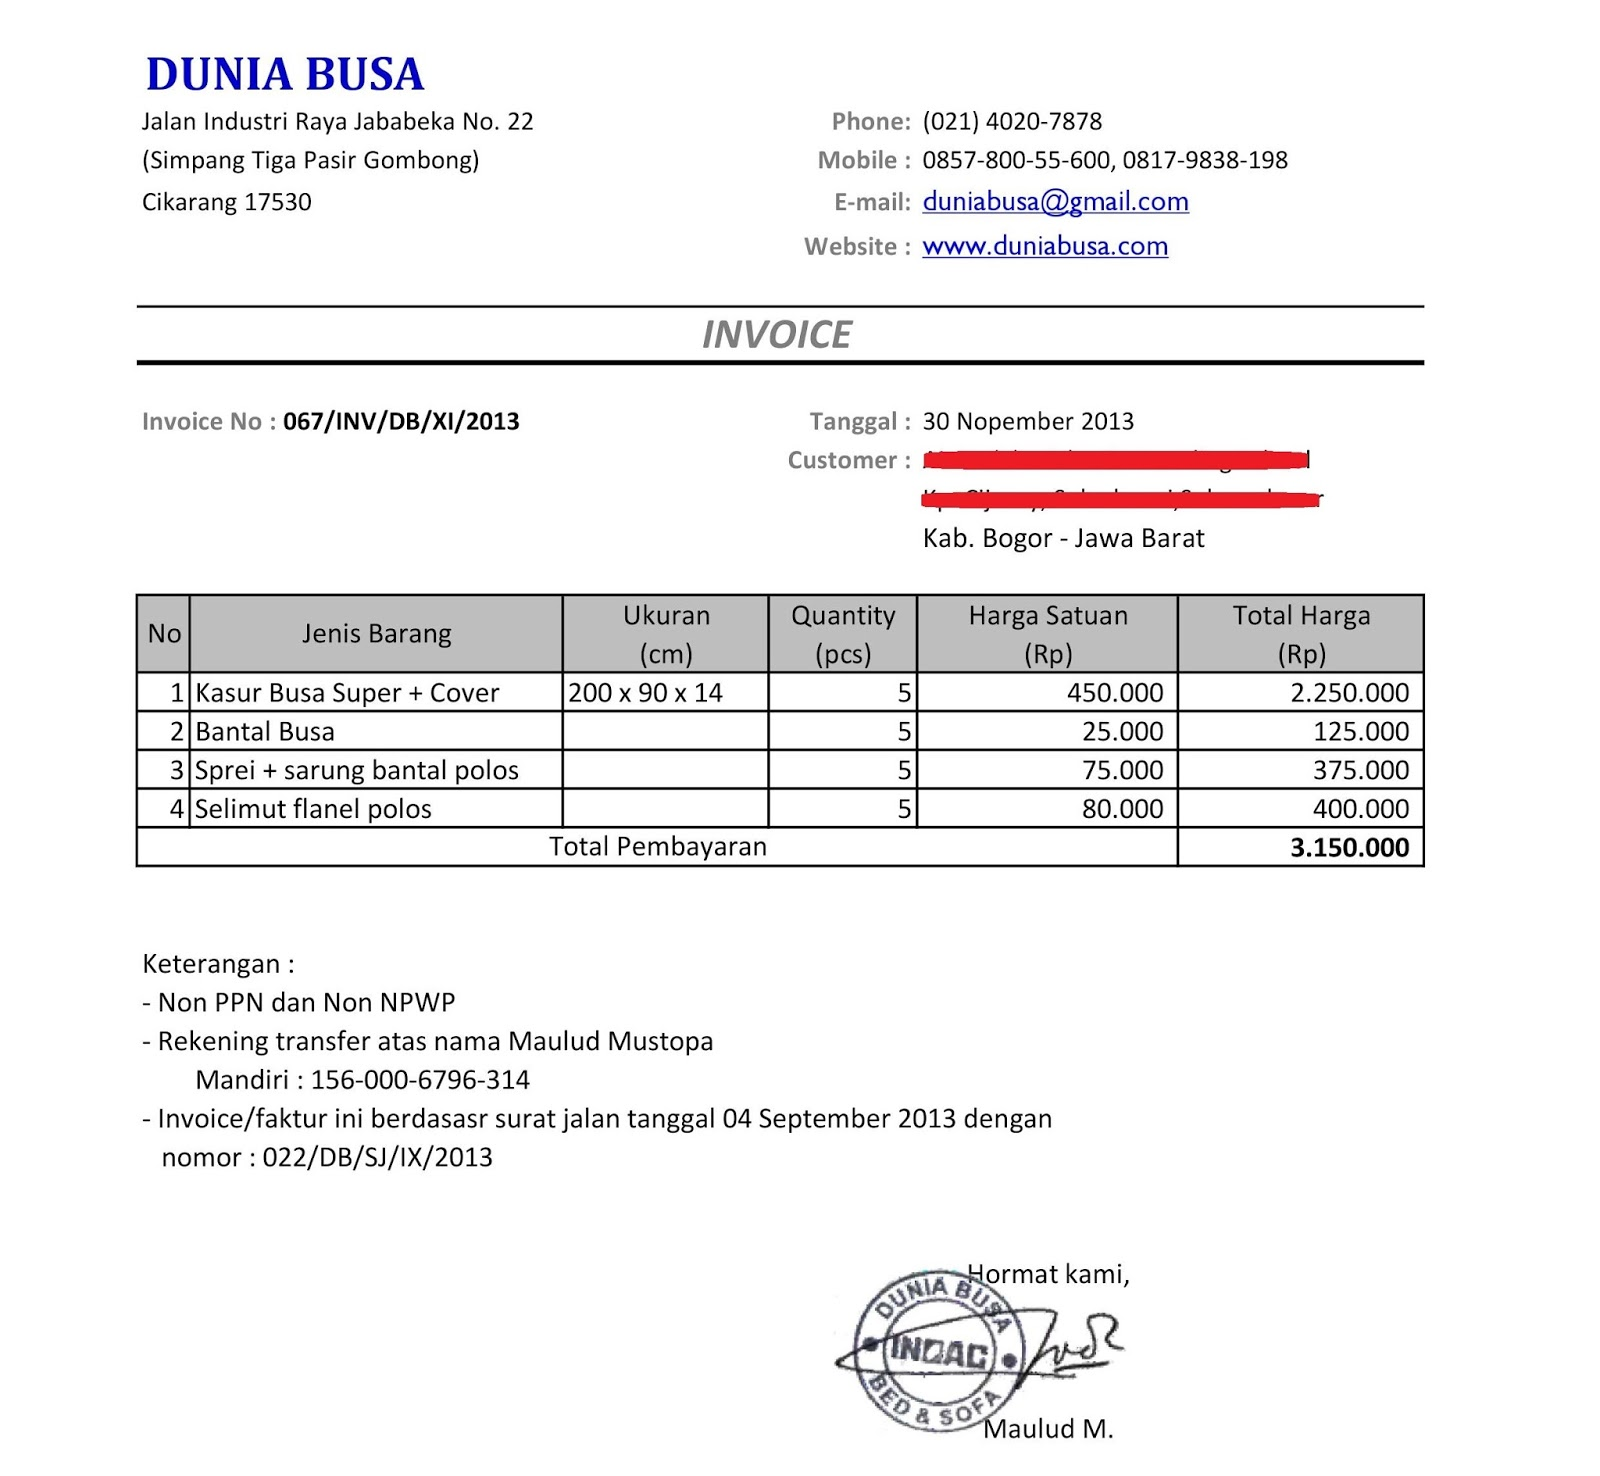 Proatmealus  Nice Free Invoice Online  Create Invoice Online  Invoice Template  With Magnificent Contoh Format Invoice Atau Surat Tagihan  Brankas Arsip  Free Invoice Online With Adorable Requirements For A Valid Tax Invoice Also Shipping Commercial Invoice In Addition Word Invoice Template  And What Do You Mean By Proforma Invoice As Well As Self Employed Invoicing Additionally Example Of Invoice Layout From Sklepco With Proatmealus  Magnificent Free Invoice Online  Create Invoice Online  Invoice Template  With Adorable Contoh Format Invoice Atau Surat Tagihan  Brankas Arsip  Free Invoice Online And Nice Requirements For A Valid Tax Invoice Also Shipping Commercial Invoice In Addition Word Invoice Template  From Sklepco